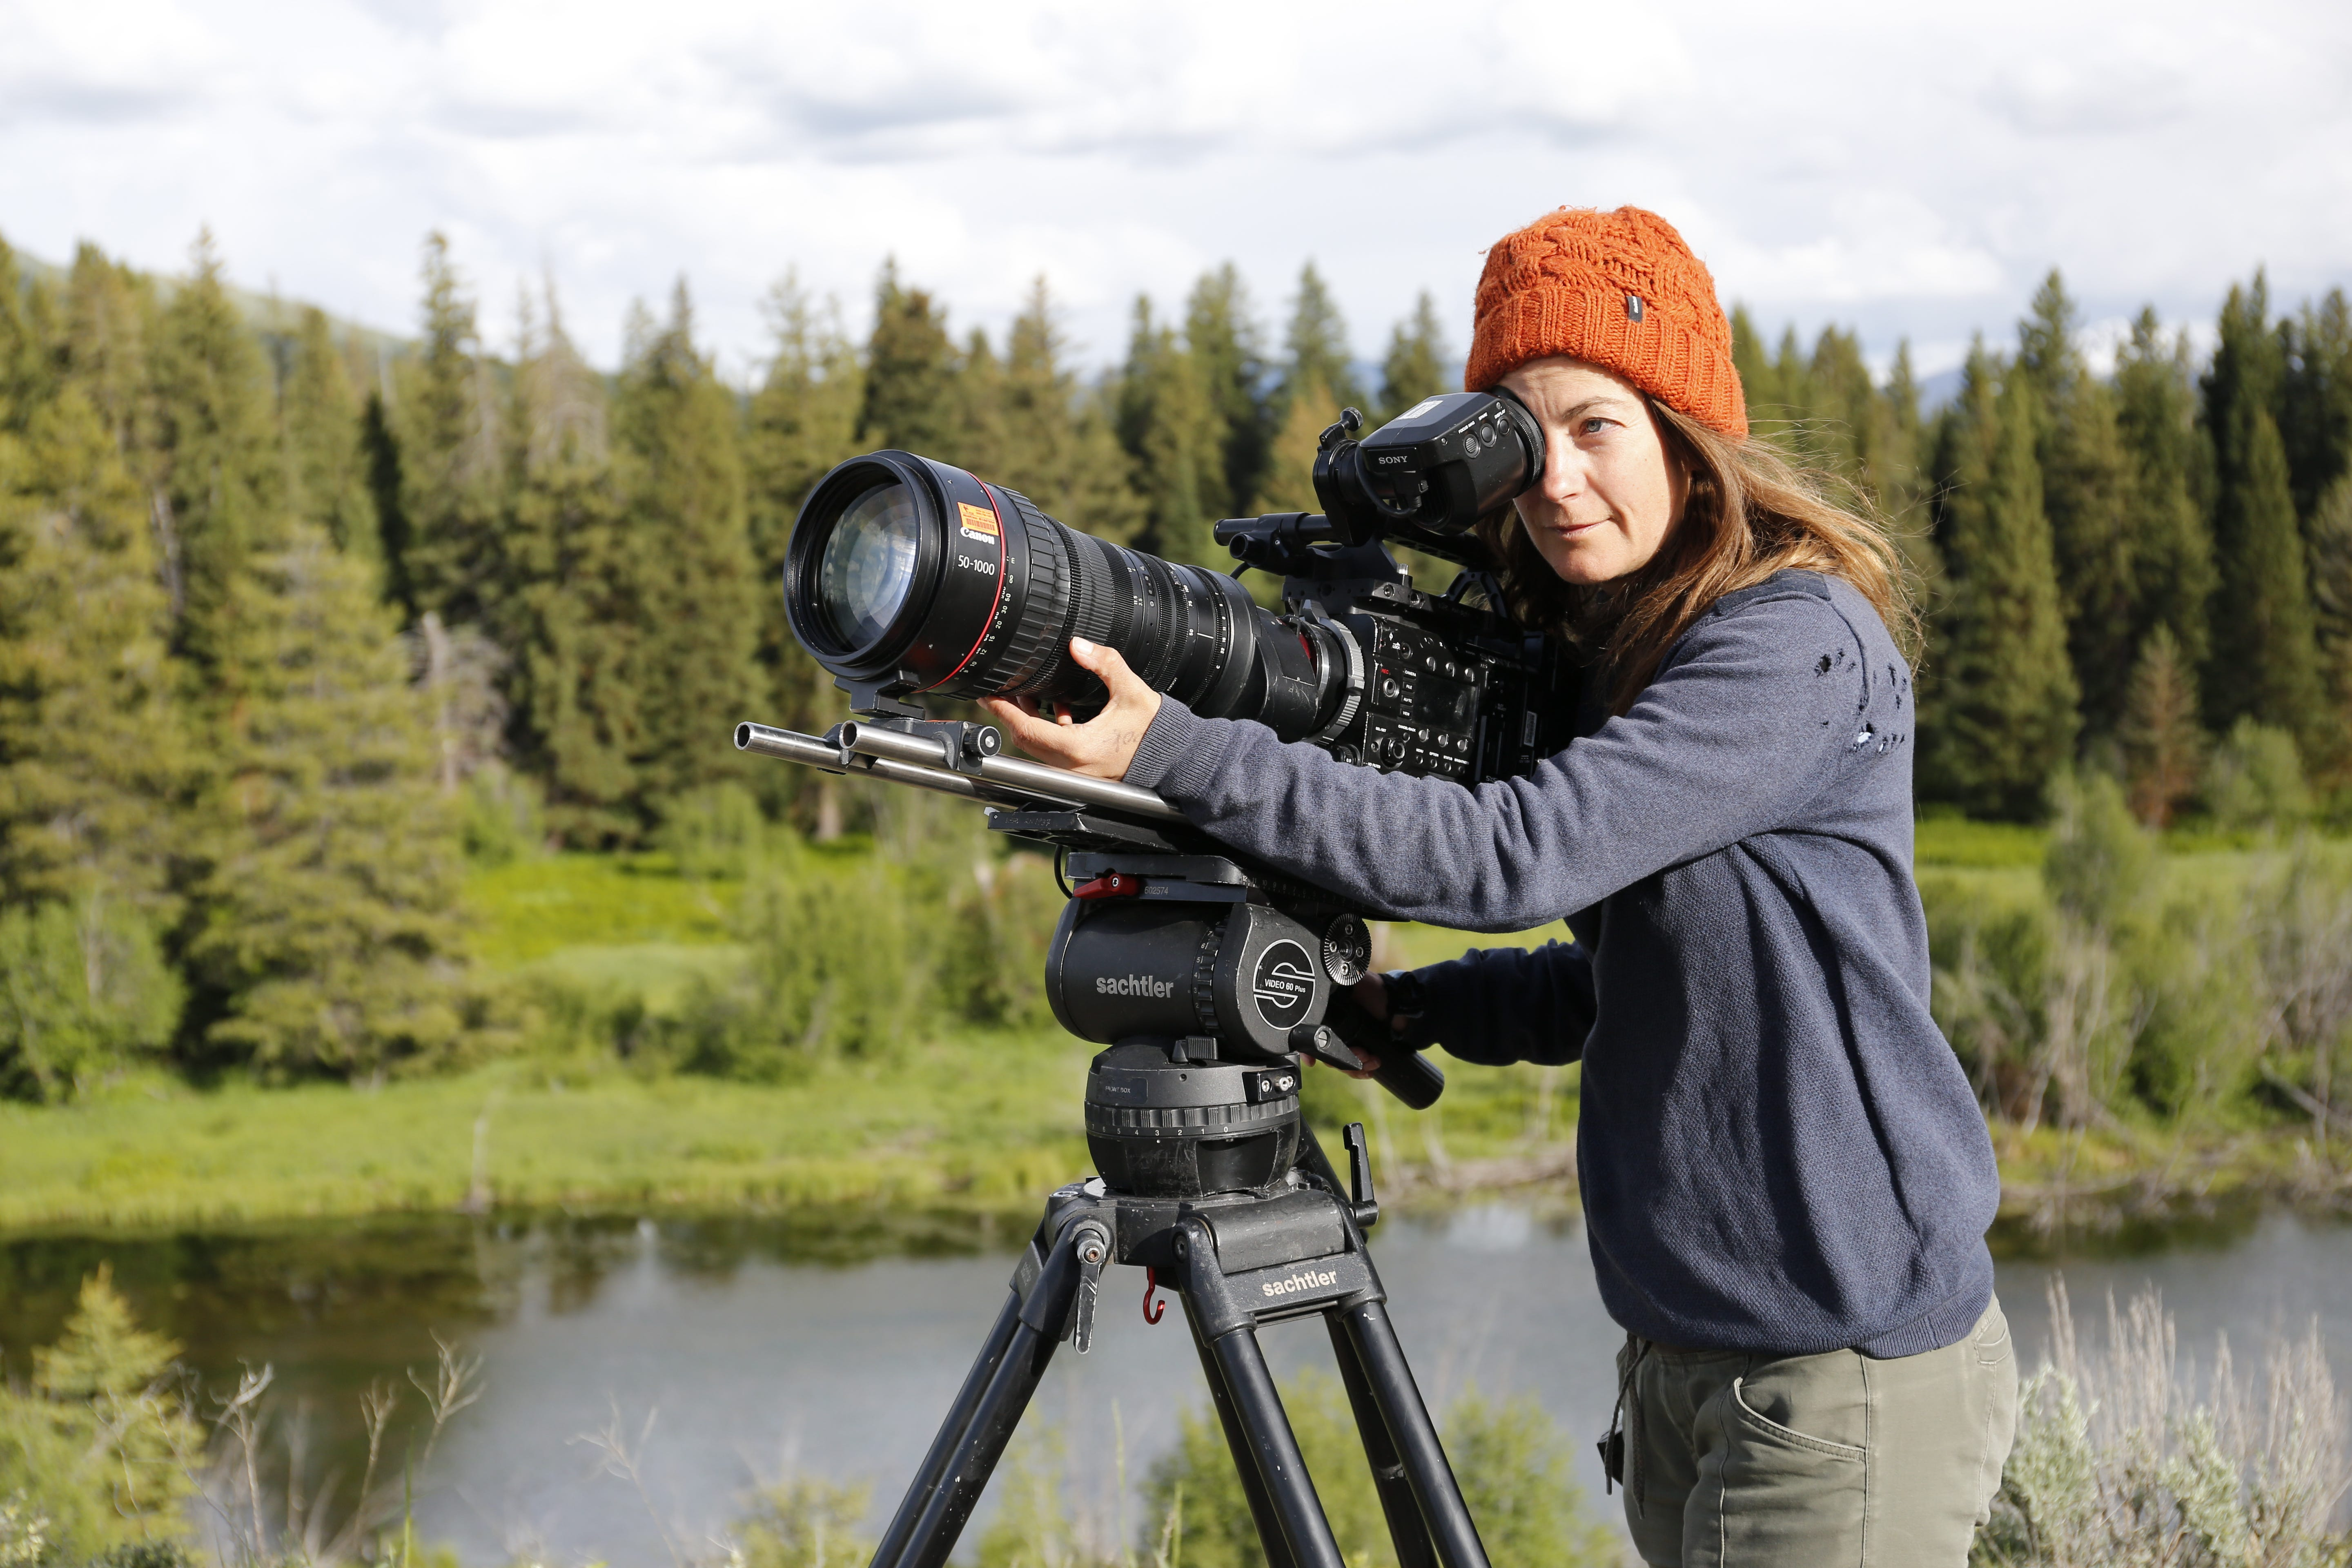 An Inside Look Into Wildlife Filmmaking From The Women Behind Yellowstone Live